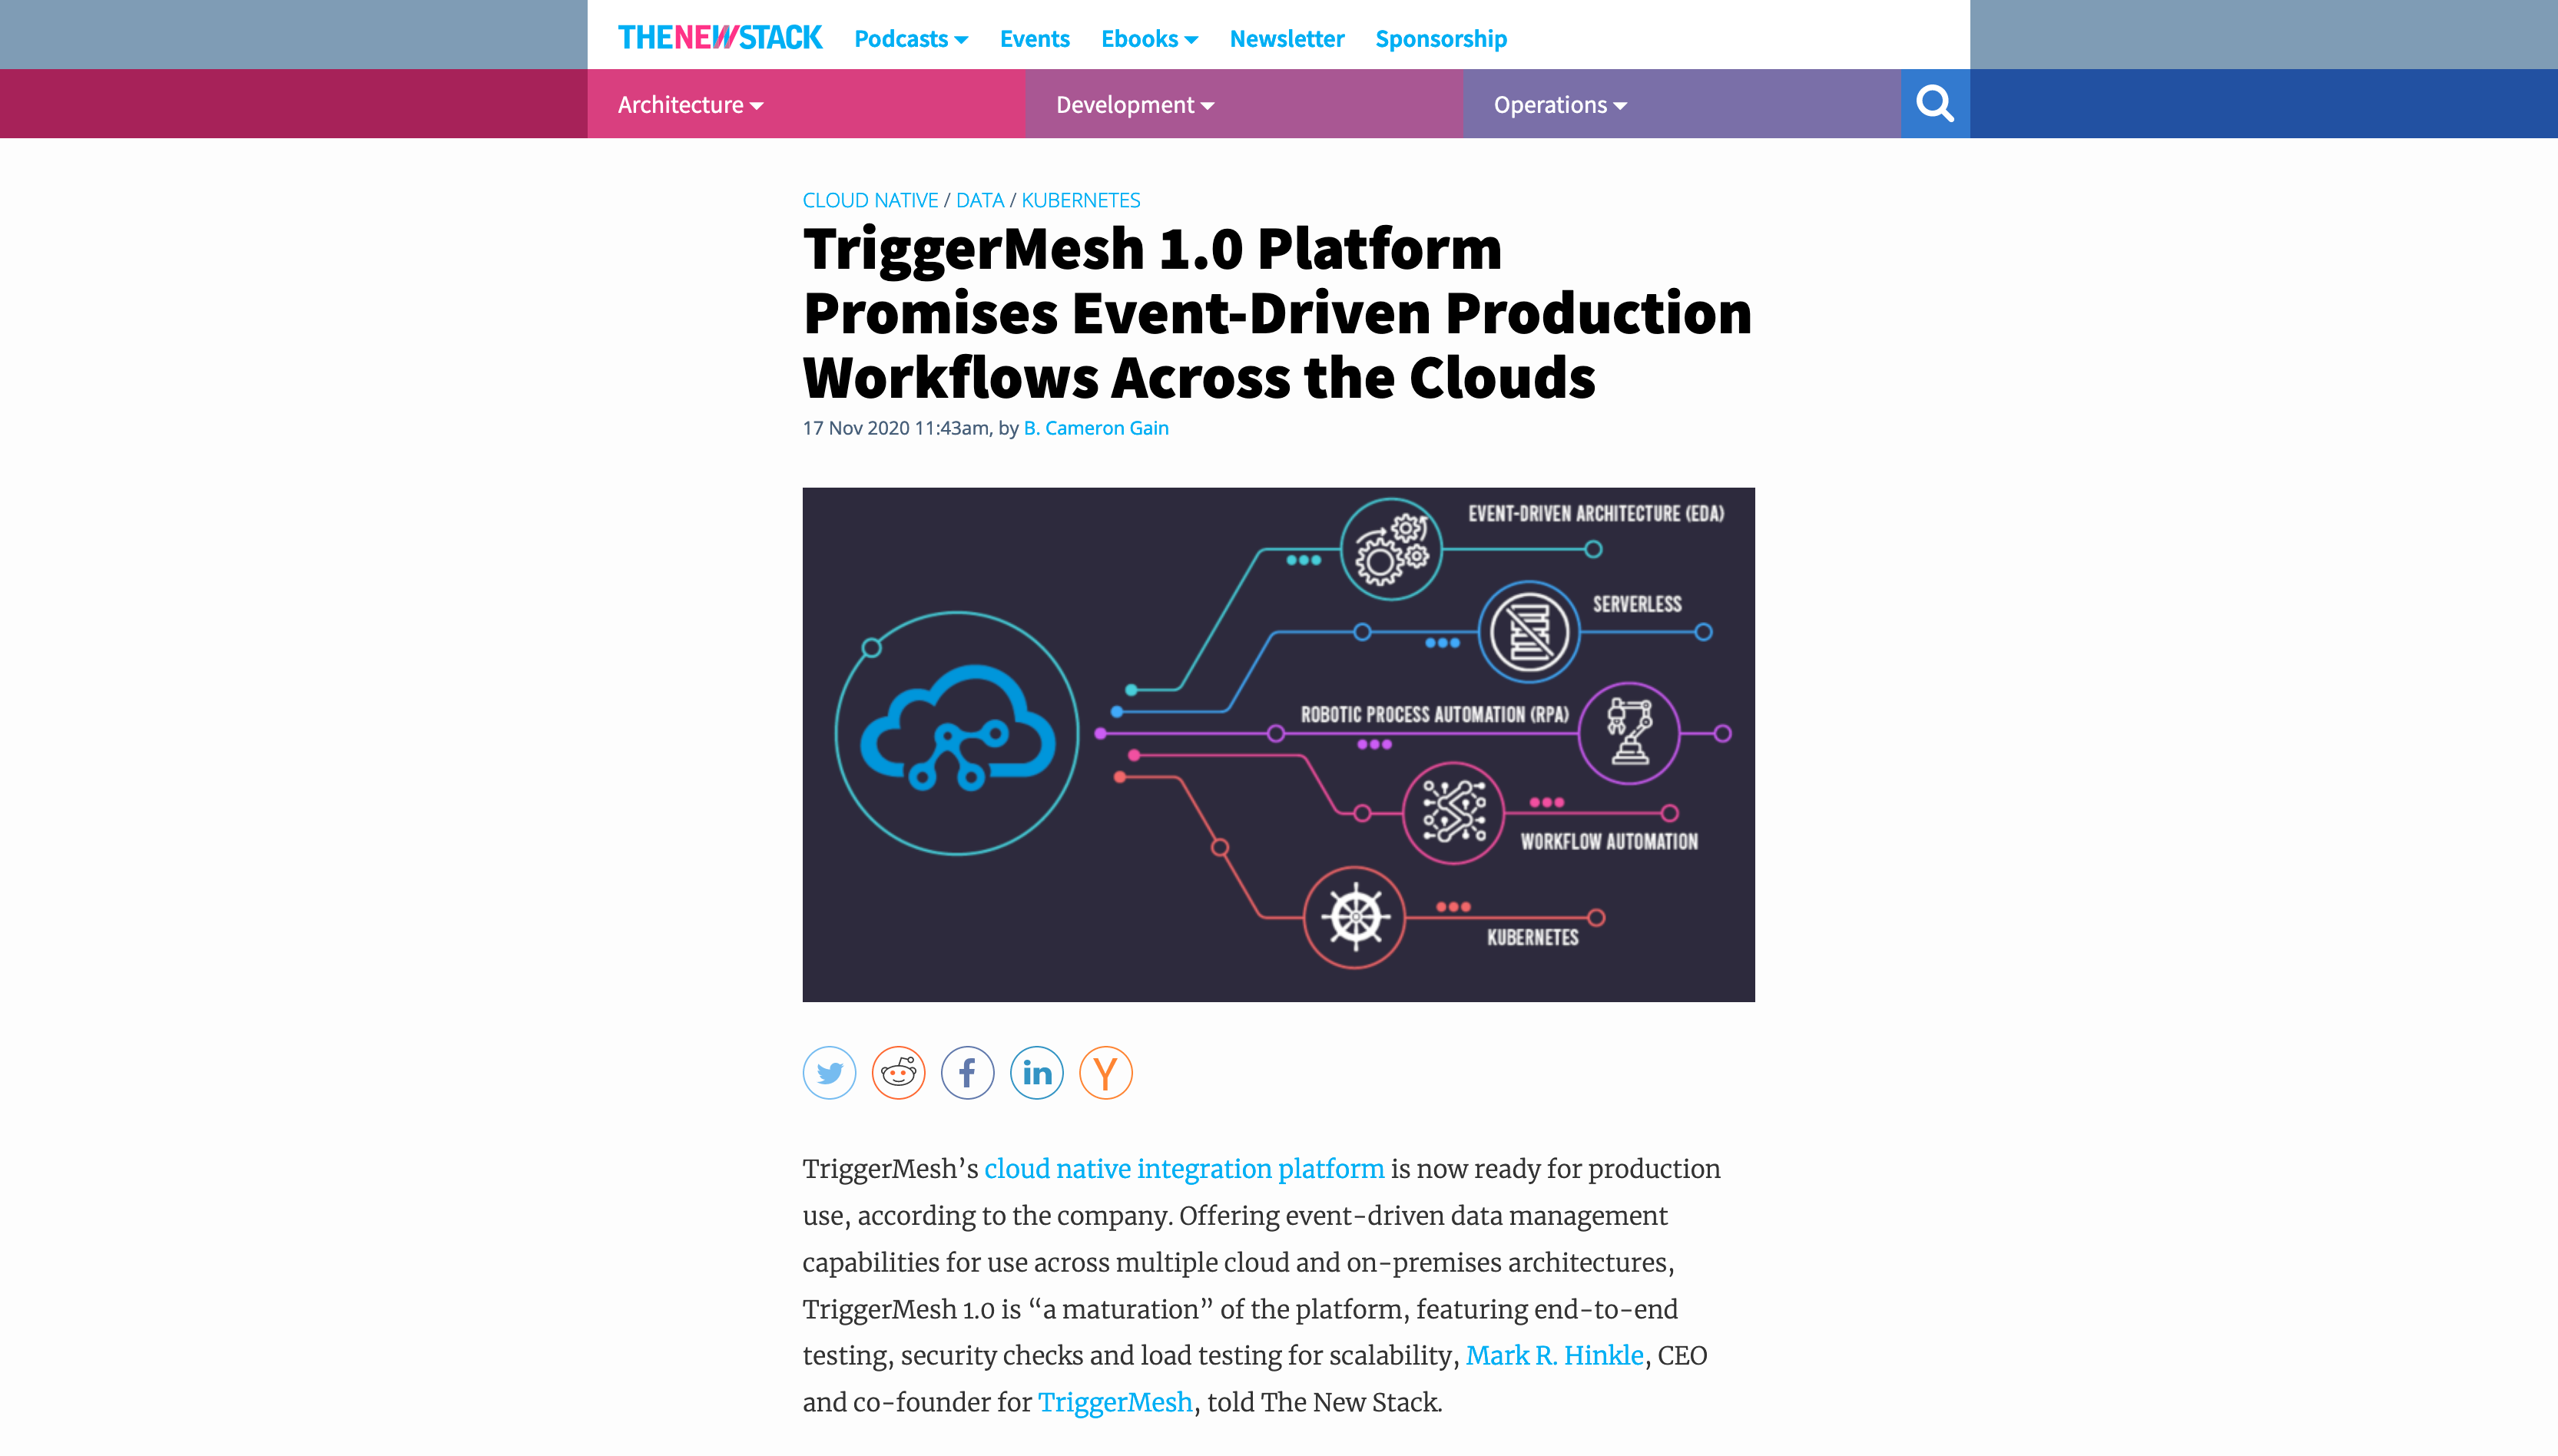 TheNewStack - TriggerMesh 1.0 Platform Promises Event-Driven Production Workflows Across the Clouds